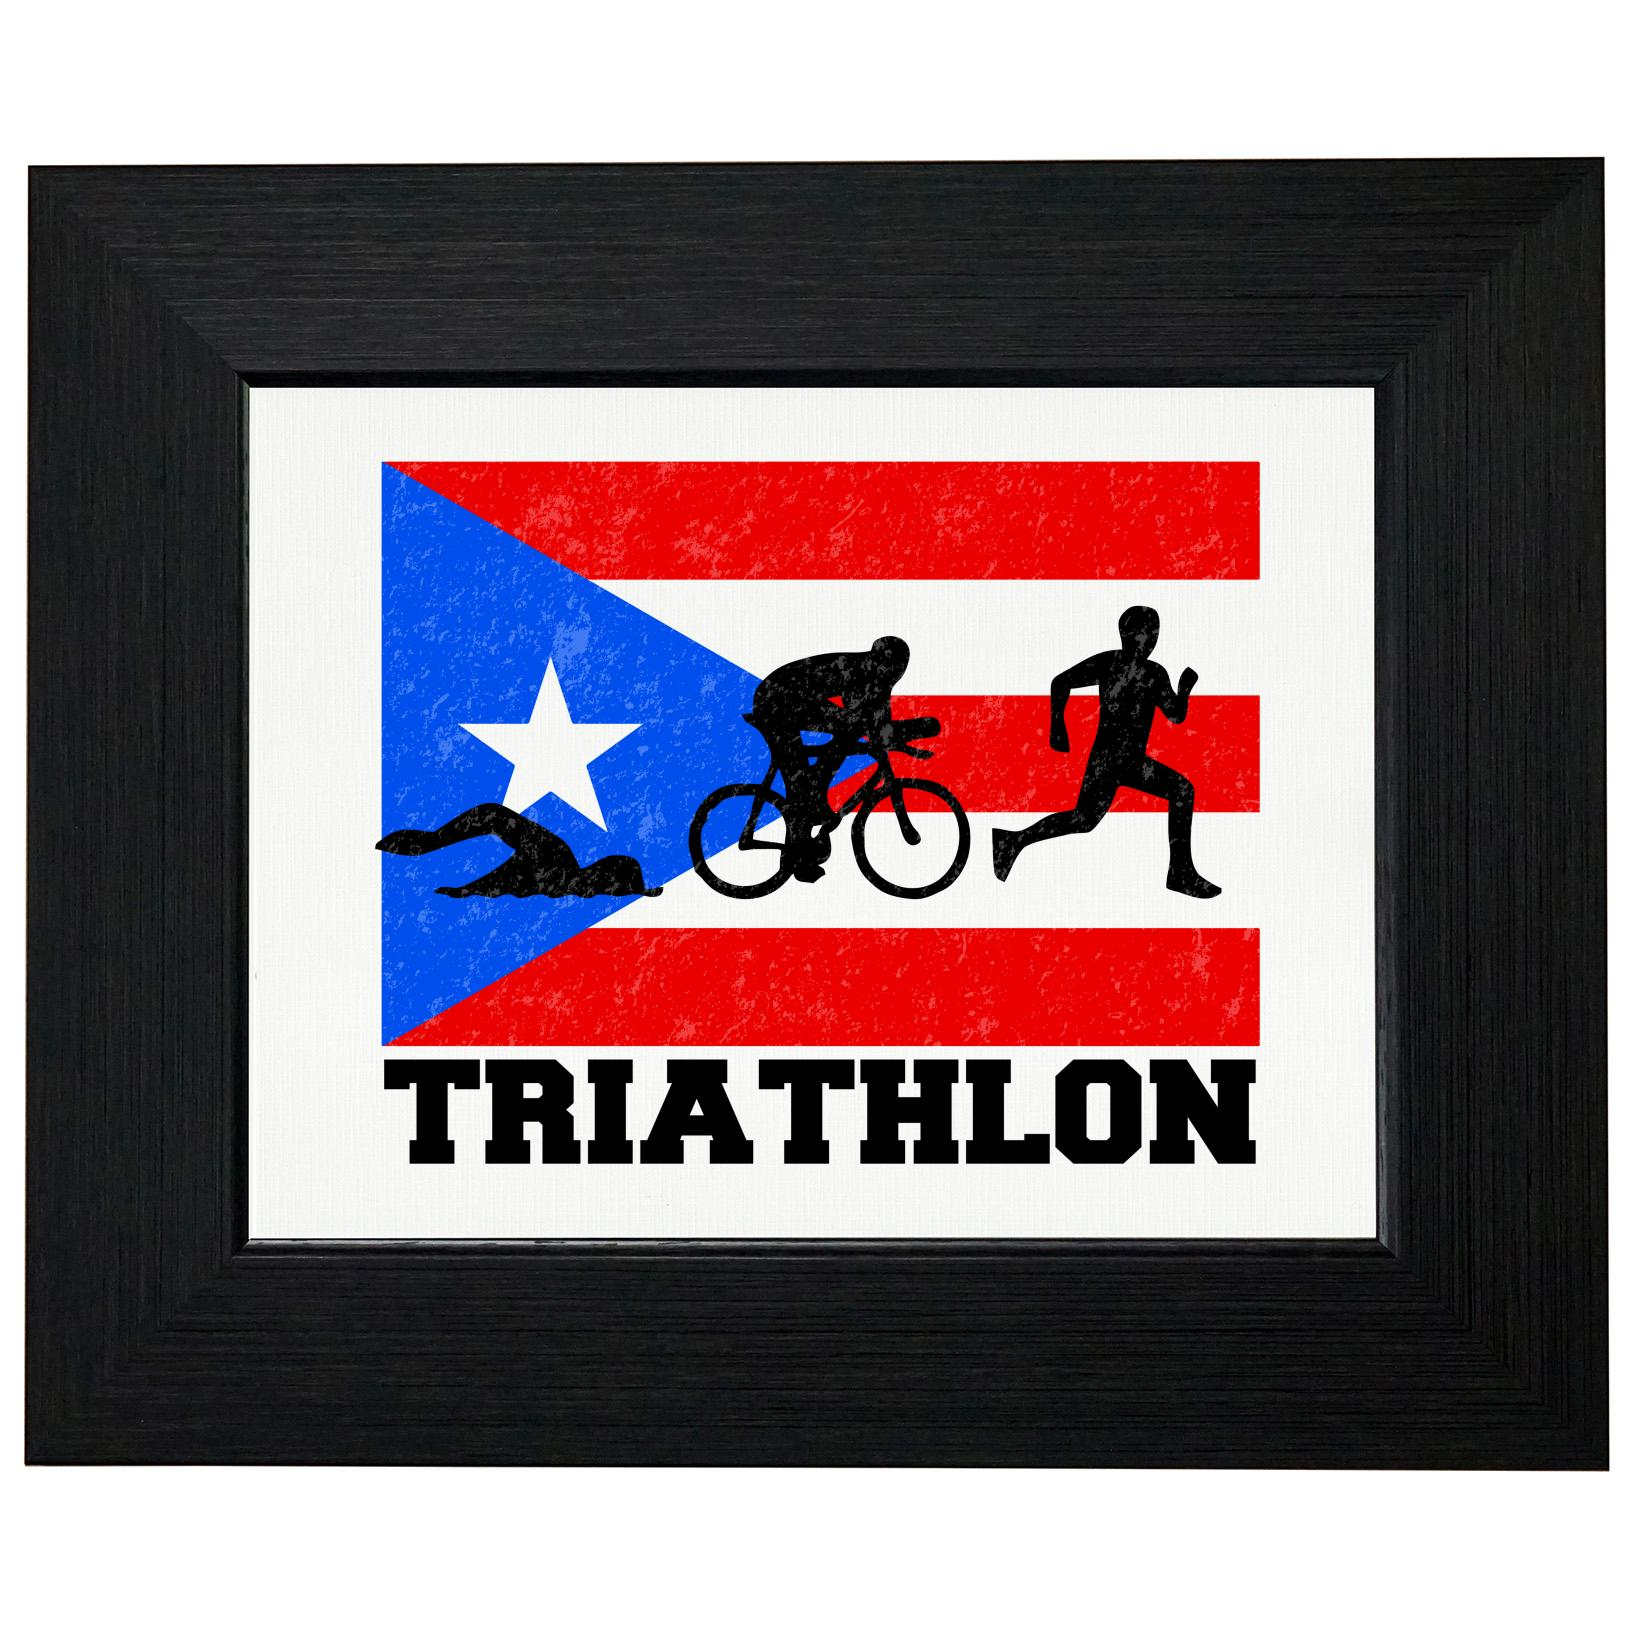 Puerto Rico Olympic - Triathlon - Flag Framed Print Poster Wall or Desk Mount Options